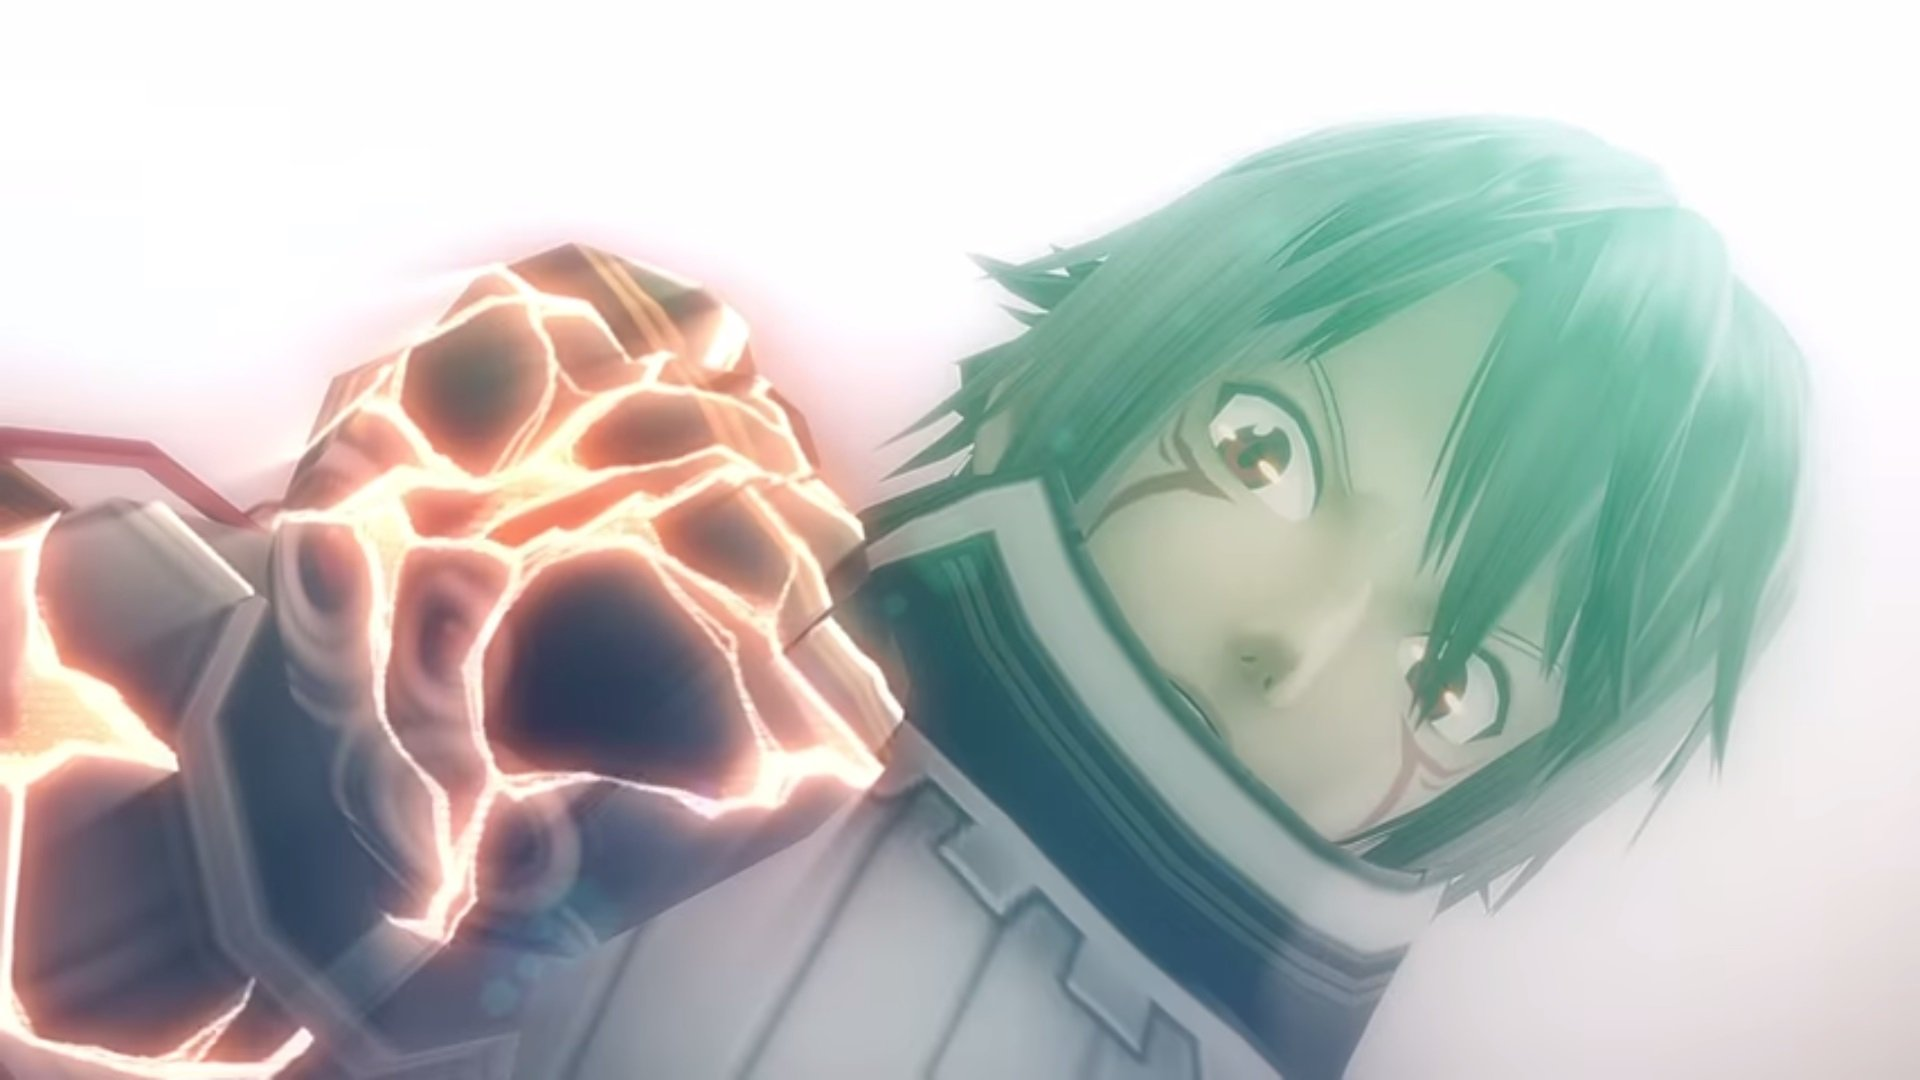 Hack G U Last Recode Release Date And New Trailer Revealed